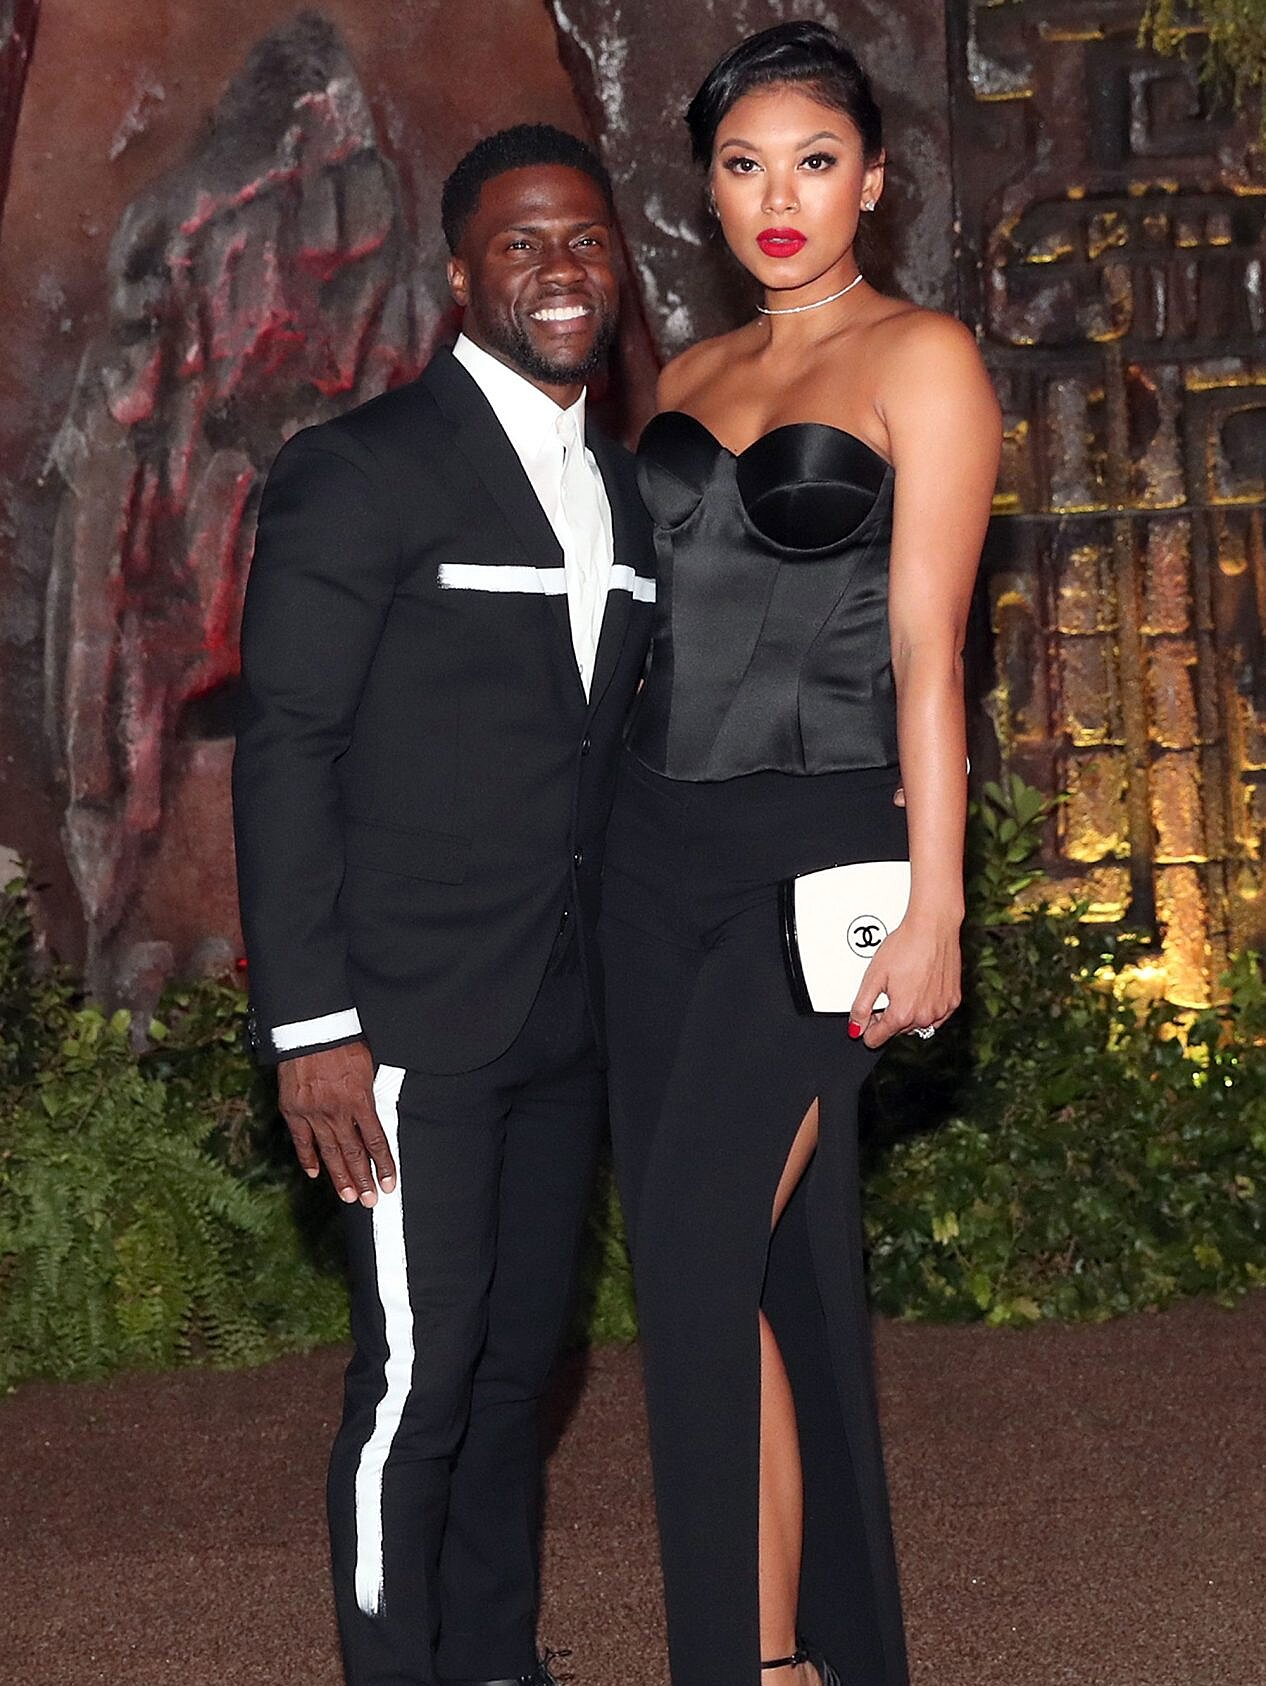 who is kevin hart dating now